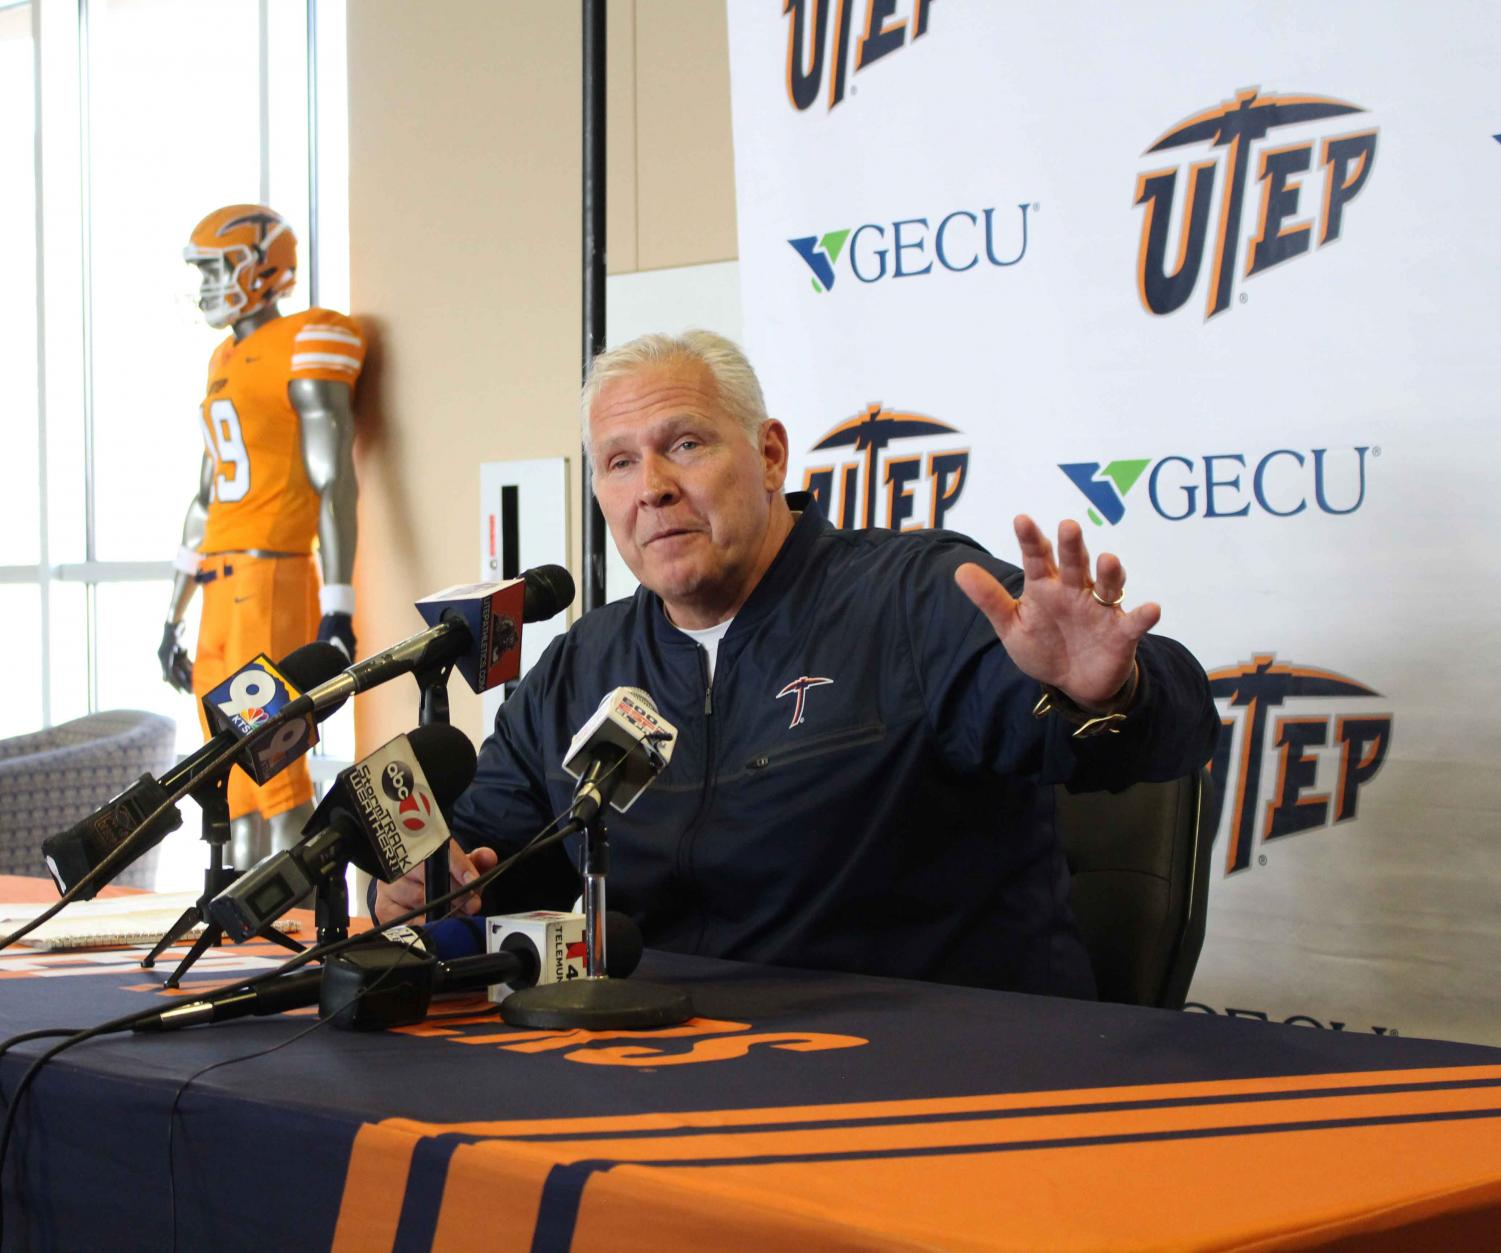 UTEP football Head Coach Dana Dimel addressed the media after announcing his 2019 recruiting class Feb. 6, at the Larry K. Durham Sports Center.